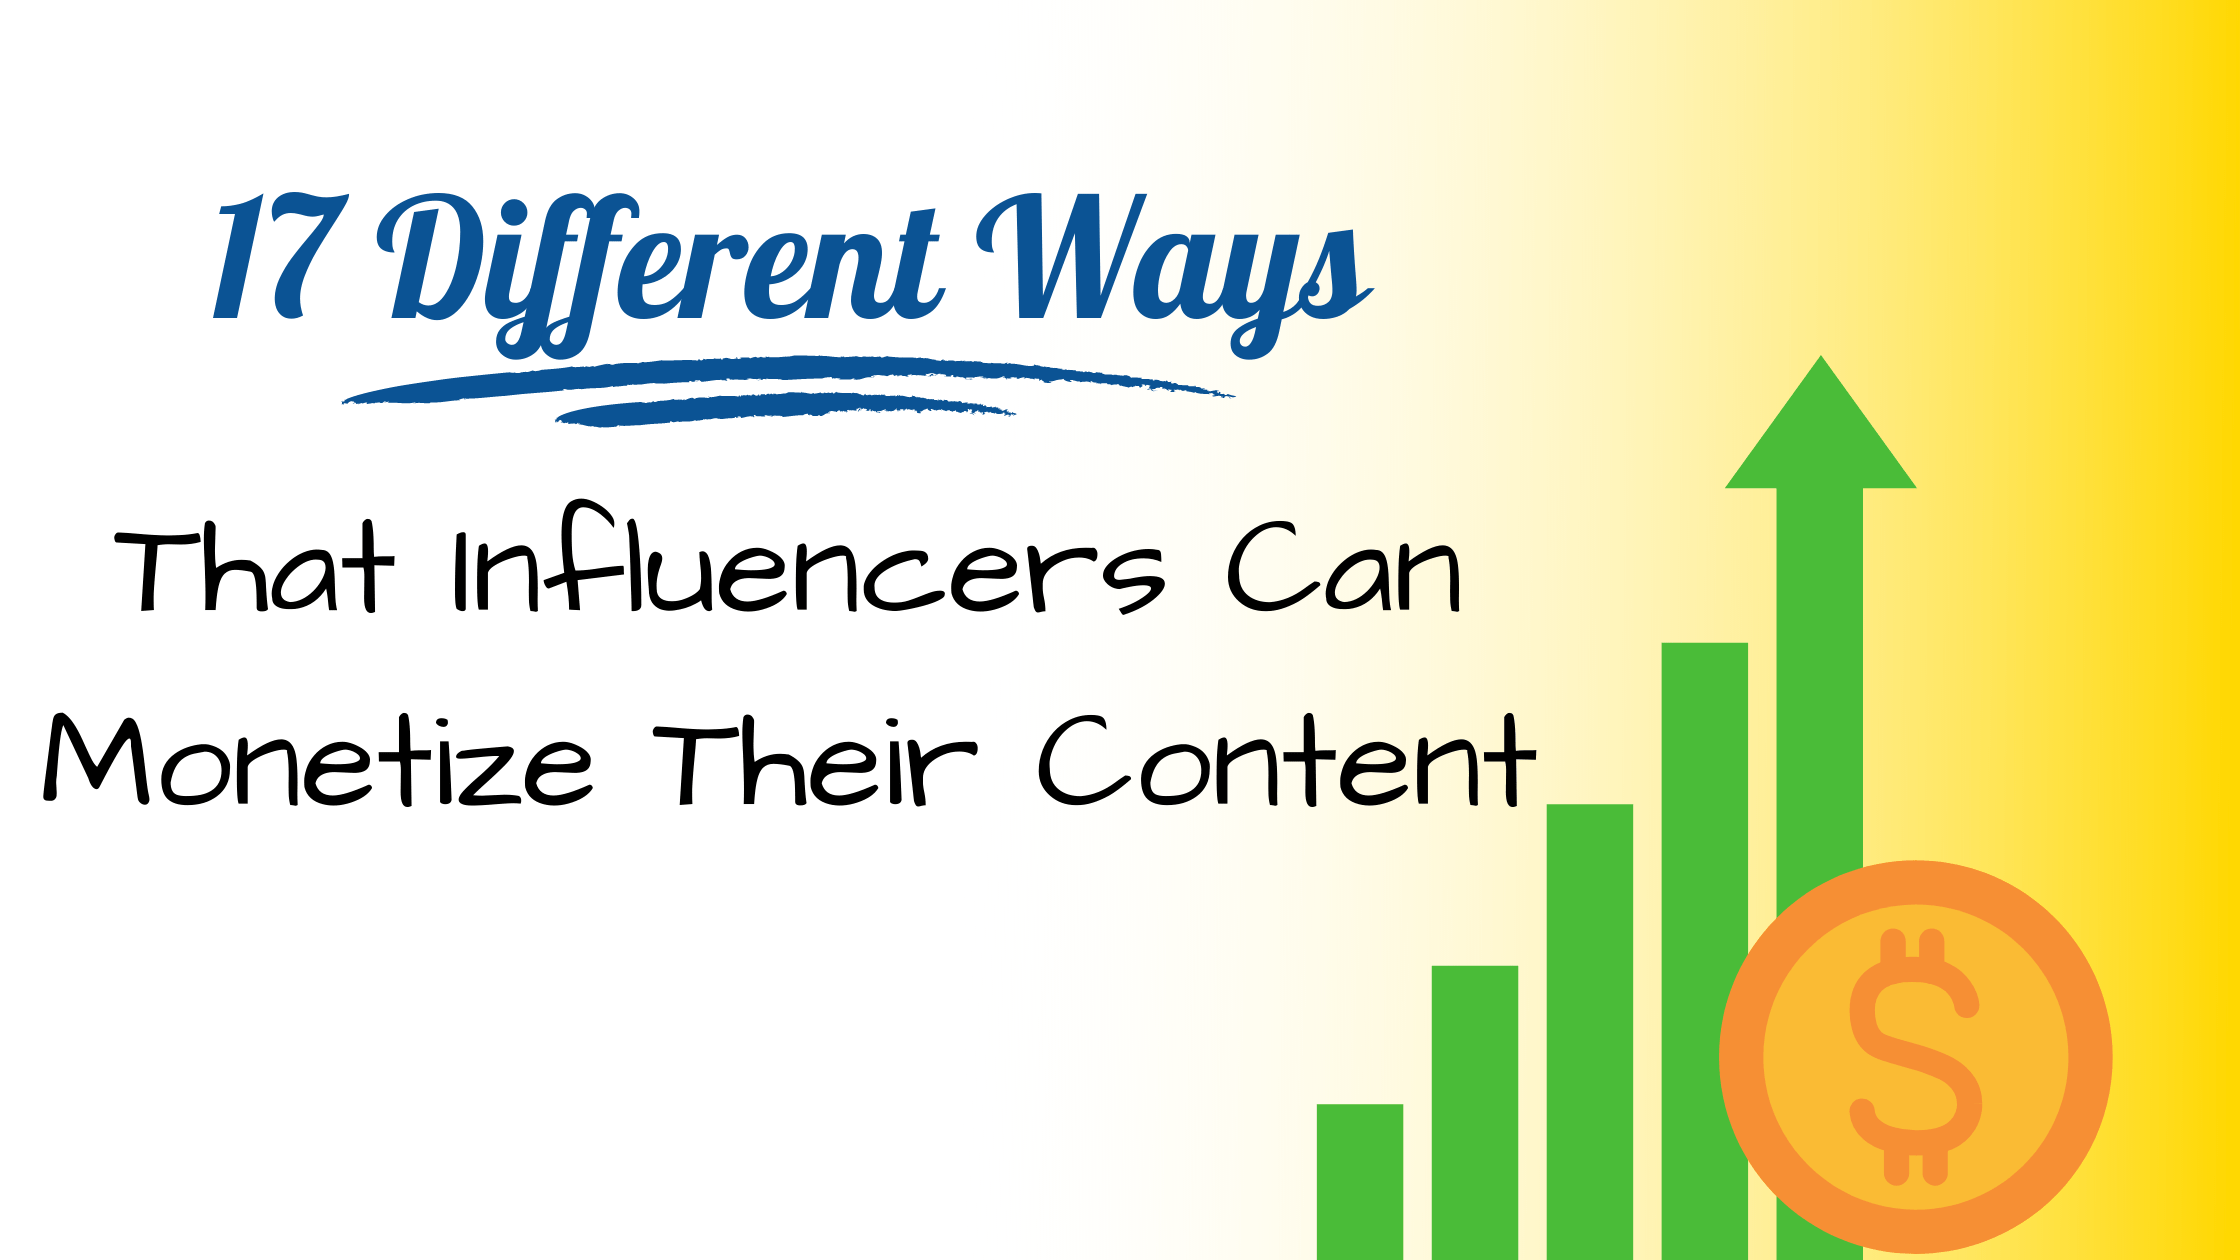 17 Different Ways That Influencers Can Monetize Their Content